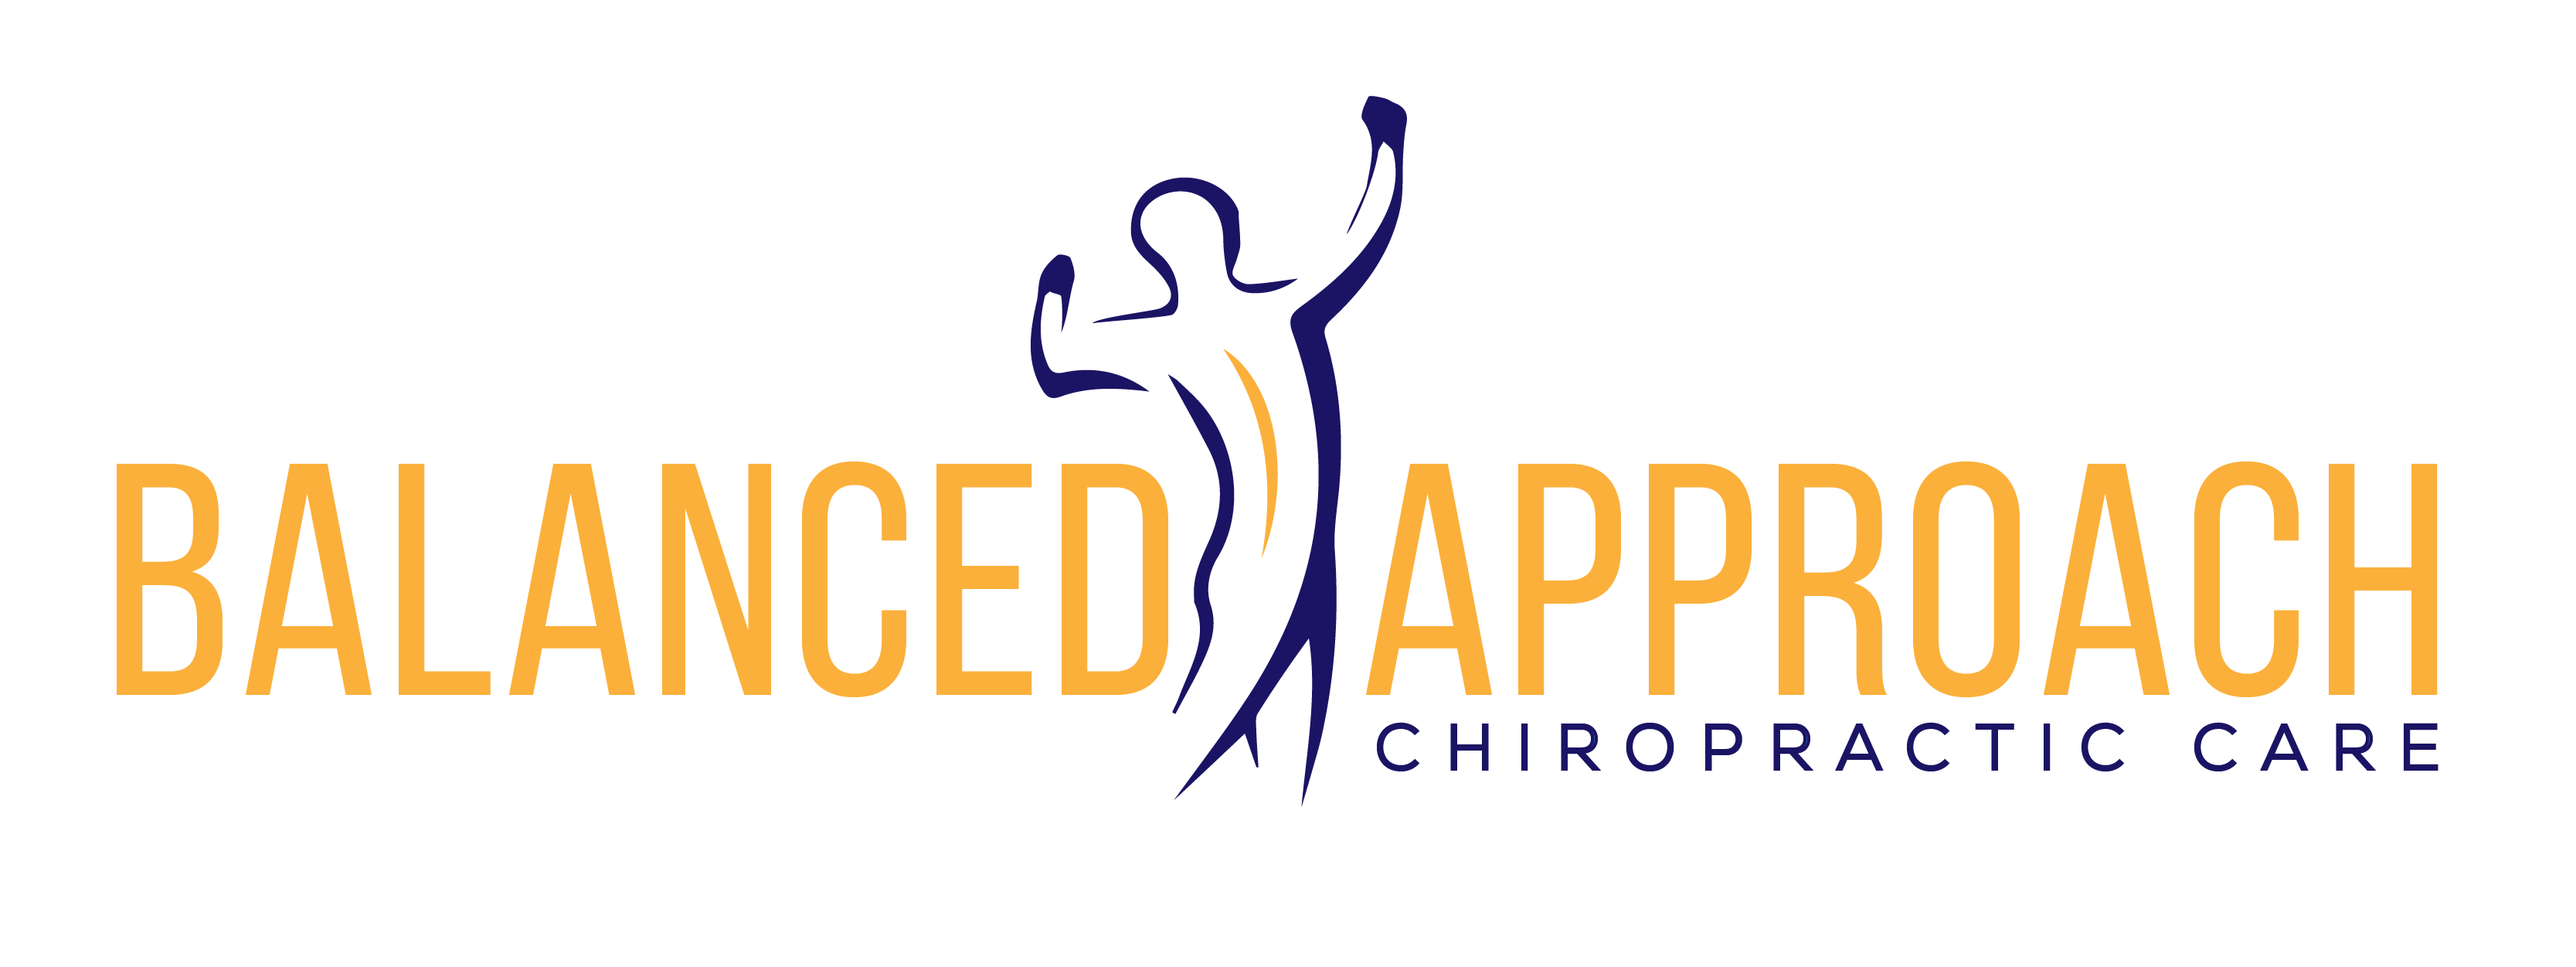 Member Monday: Balanced Approach Chiropractic Care